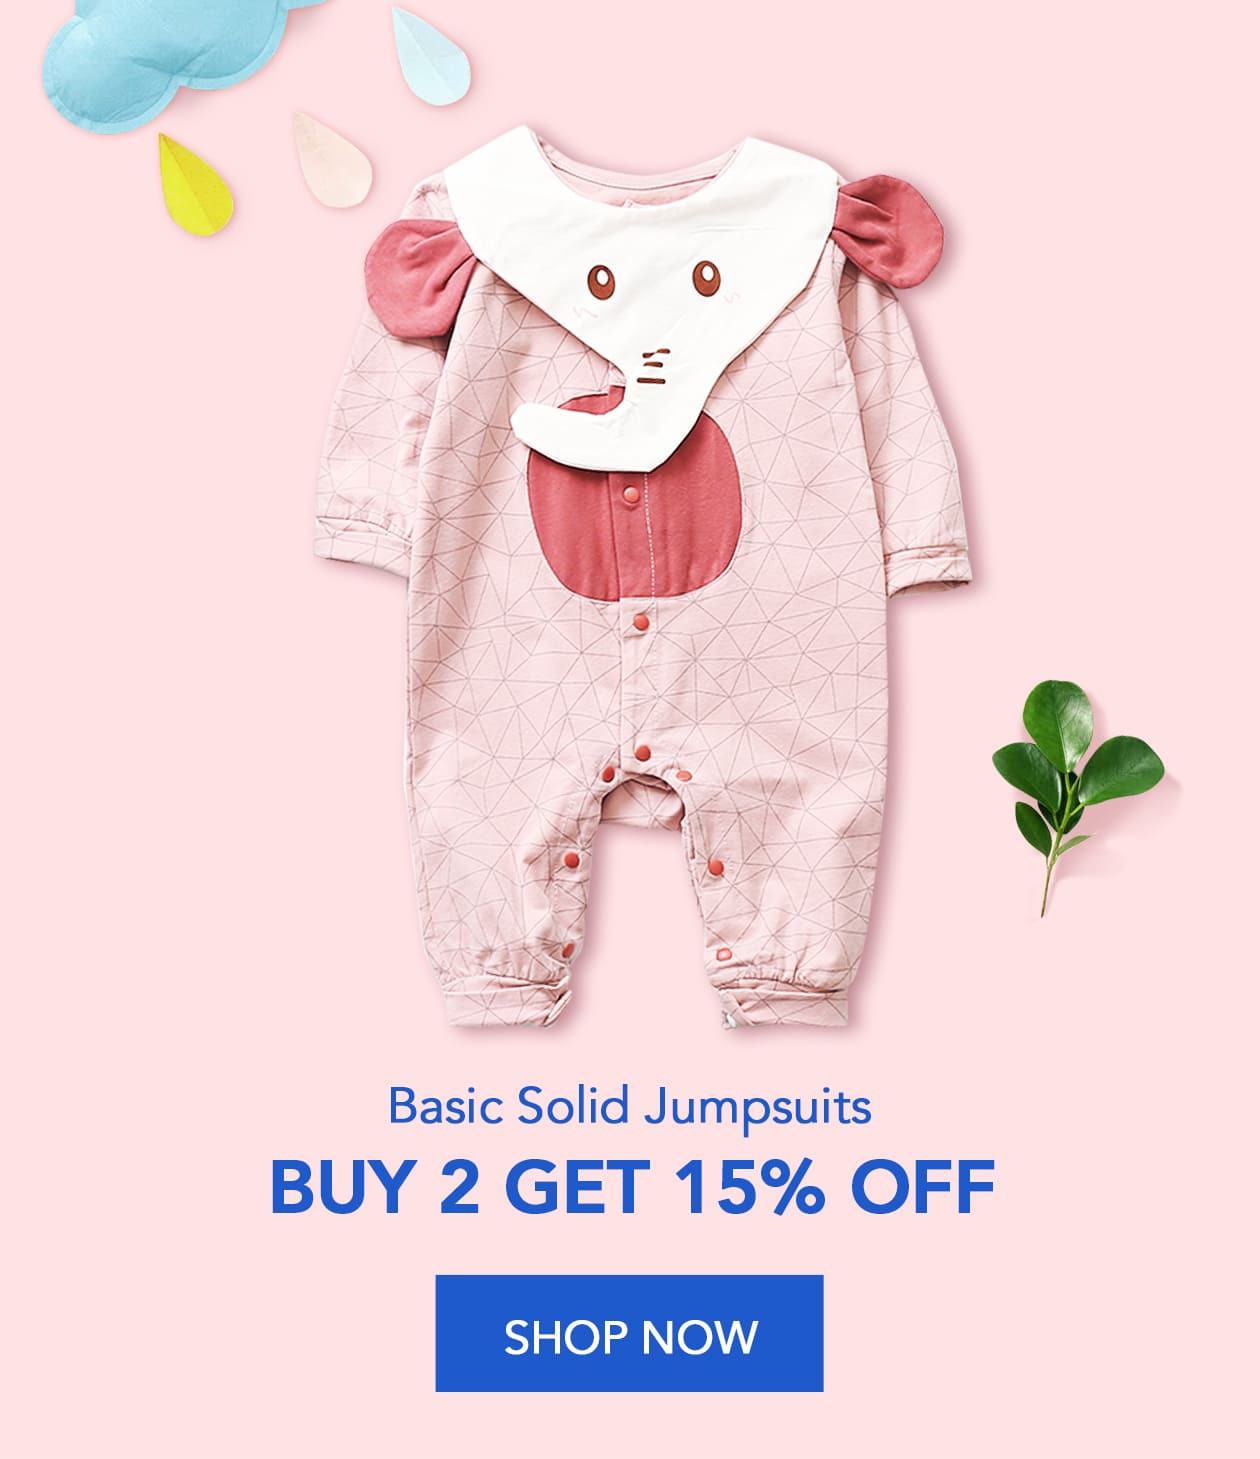 c4d456165a15c SHOP BY CATEGORIES. Baby & Toddler Girl